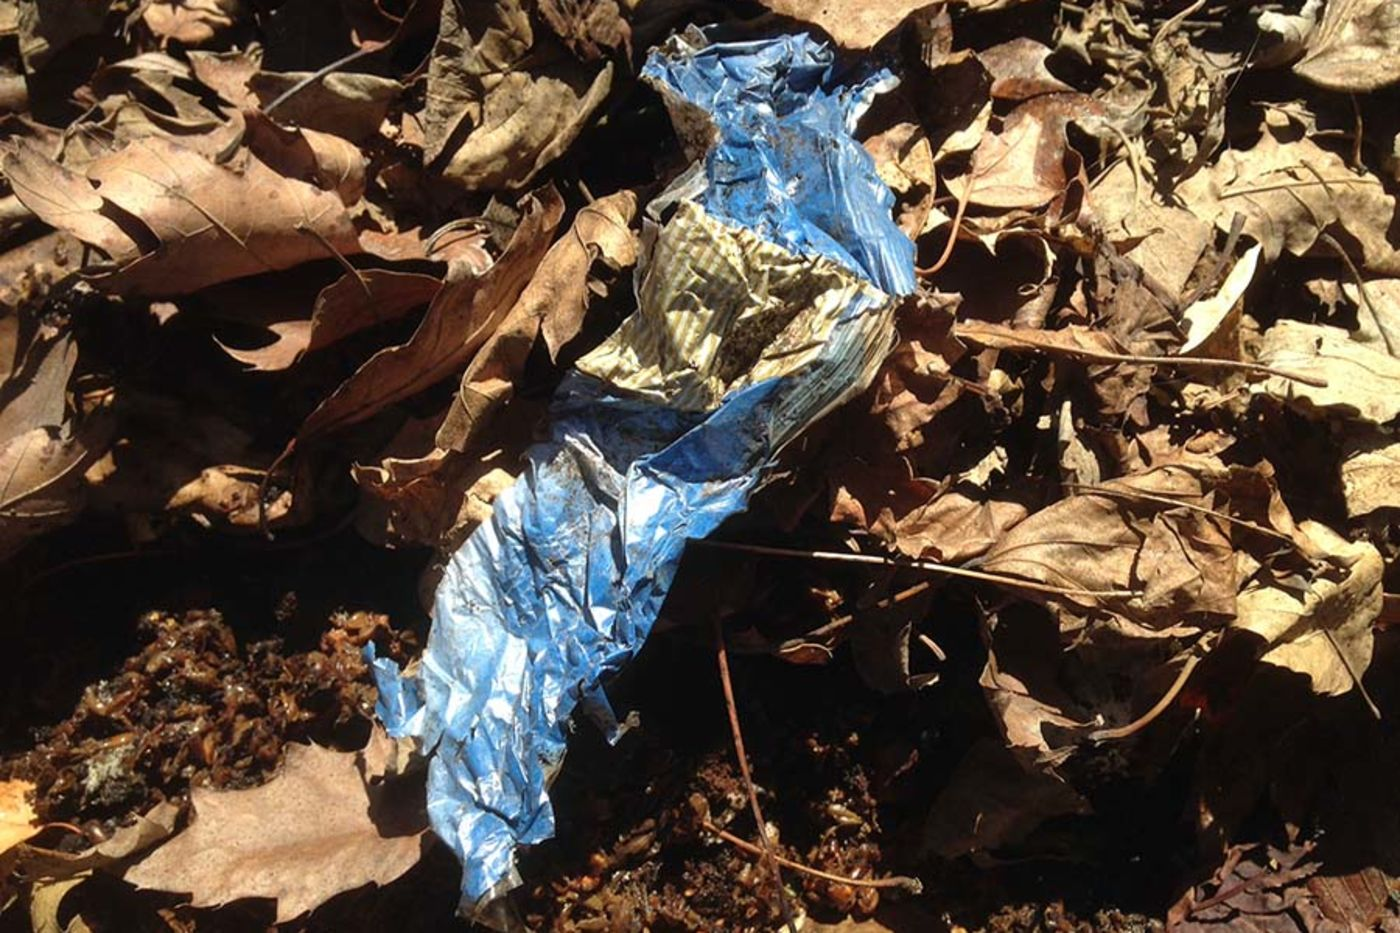 A crinkly blue wrapper surrounded by brown leaves and dirt